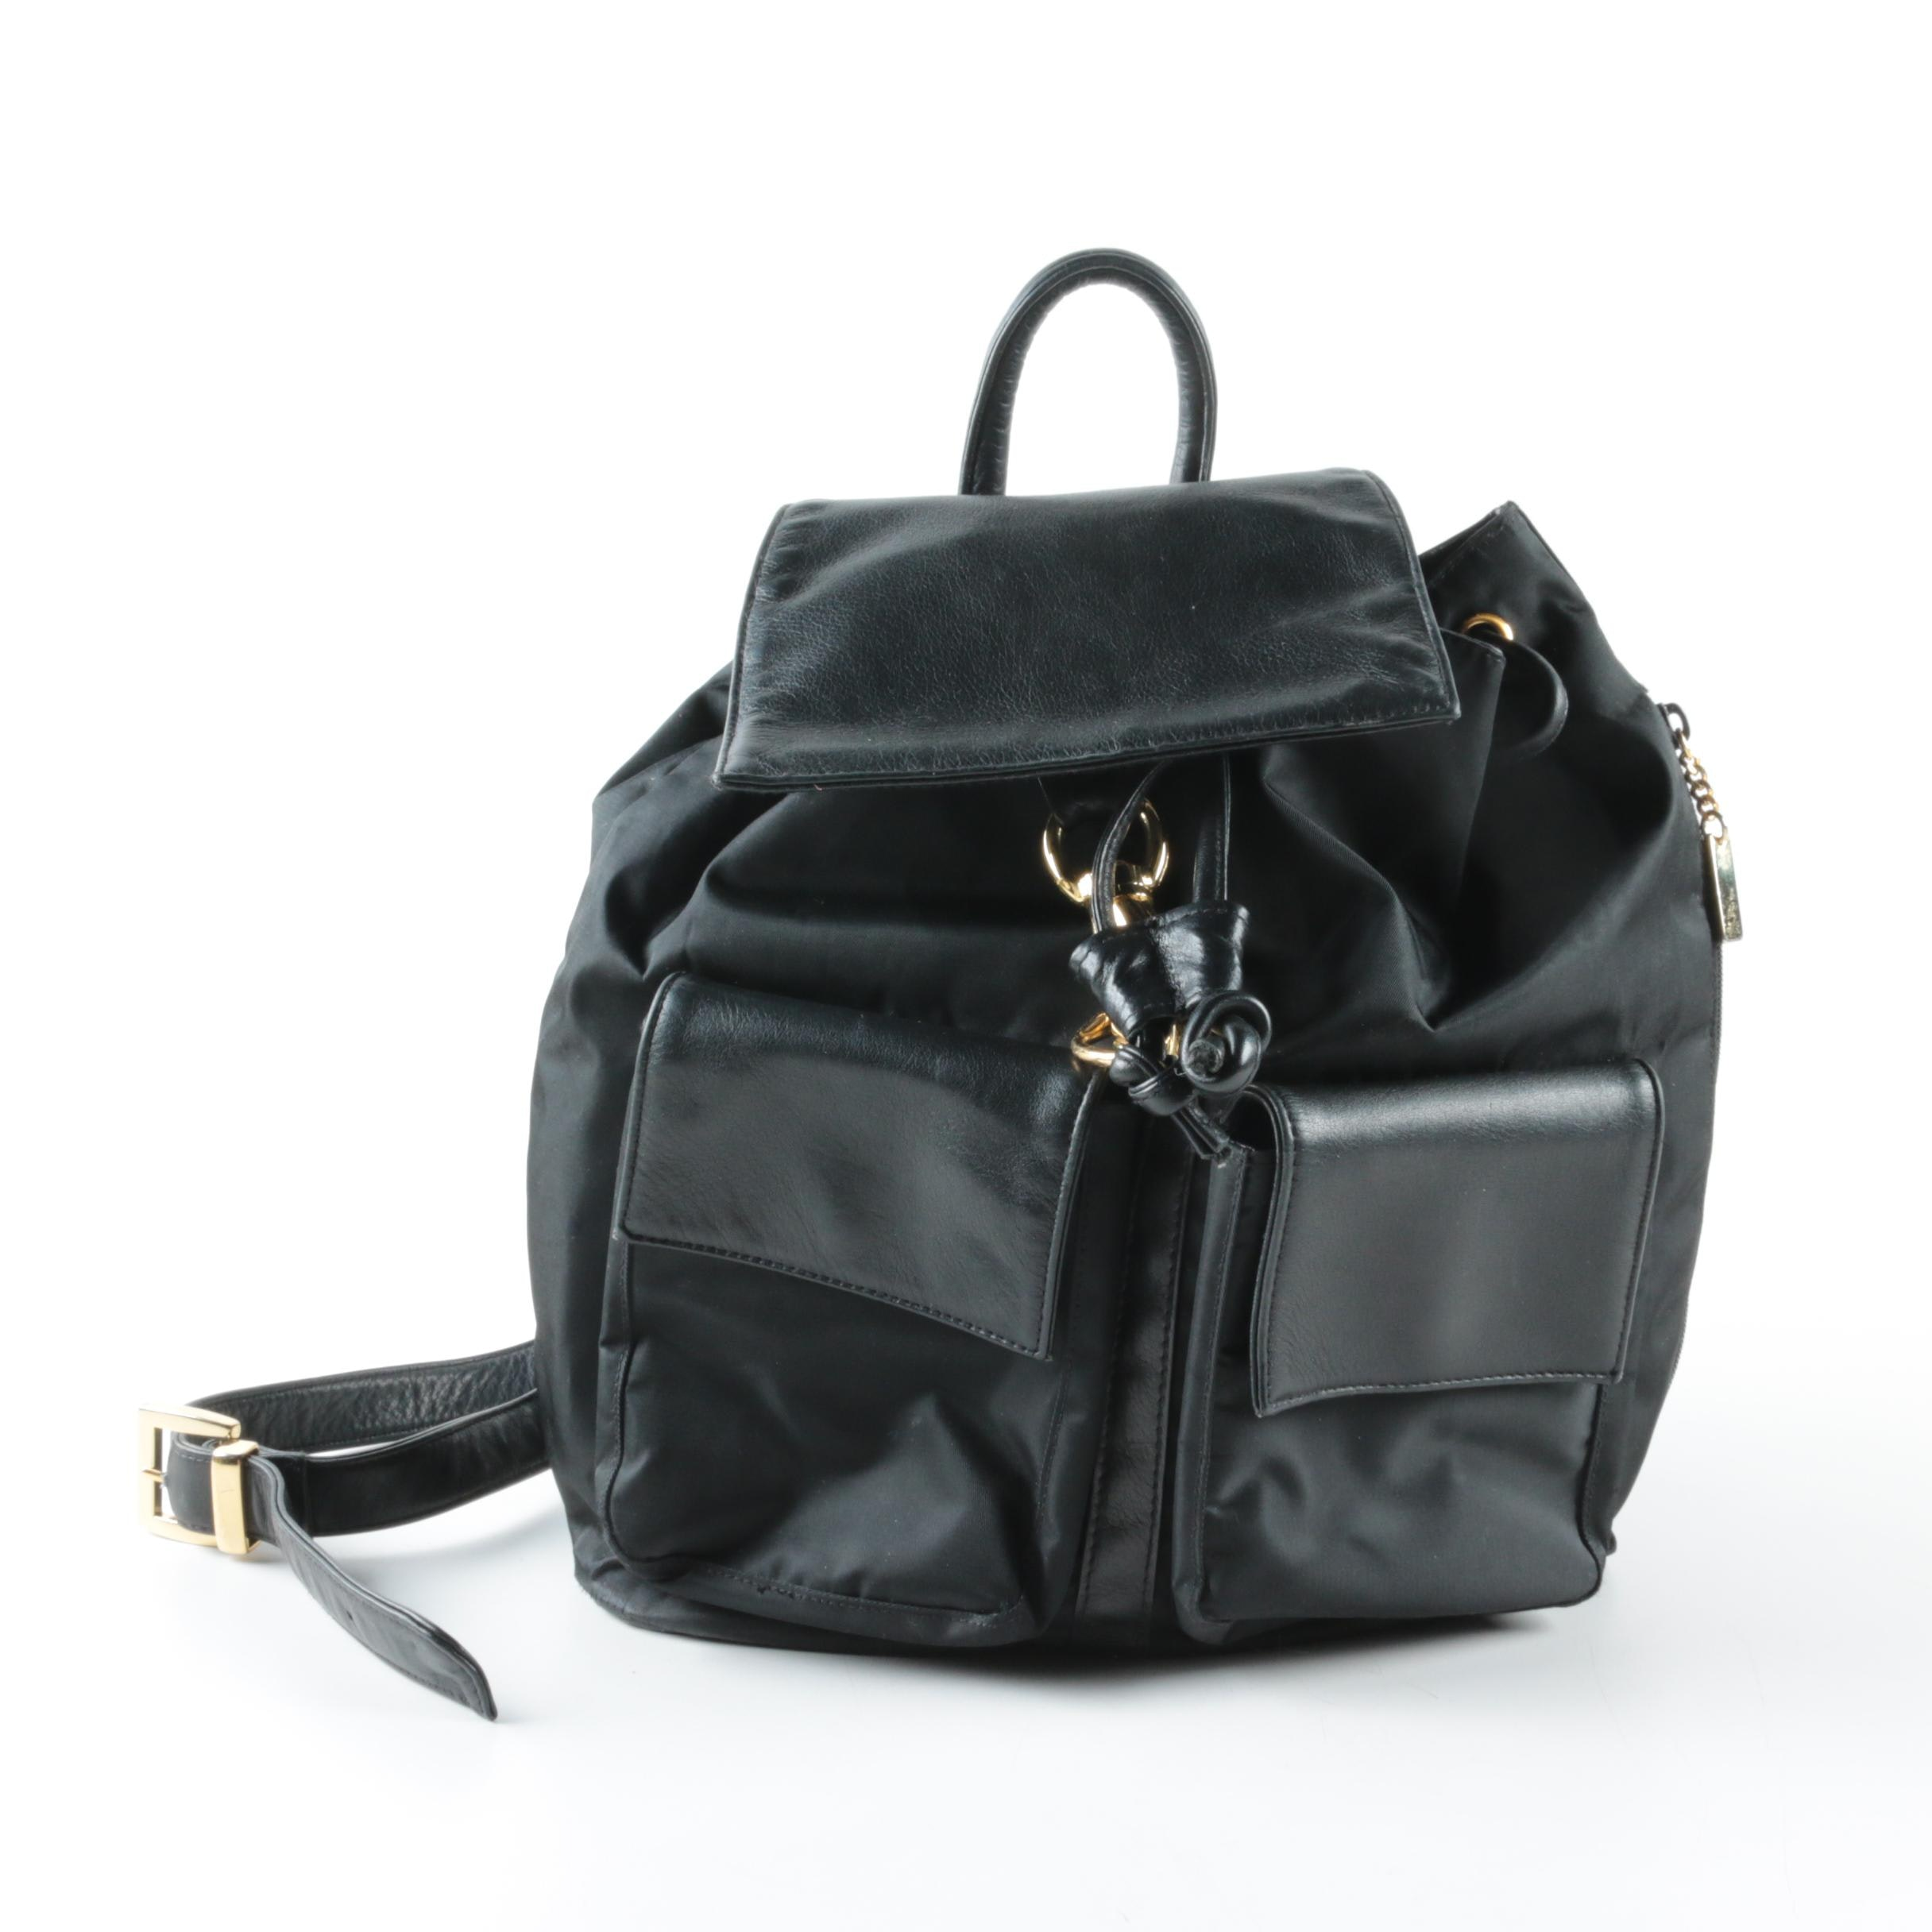 Lord & Taylor Nylon and Leather Backpack Purse